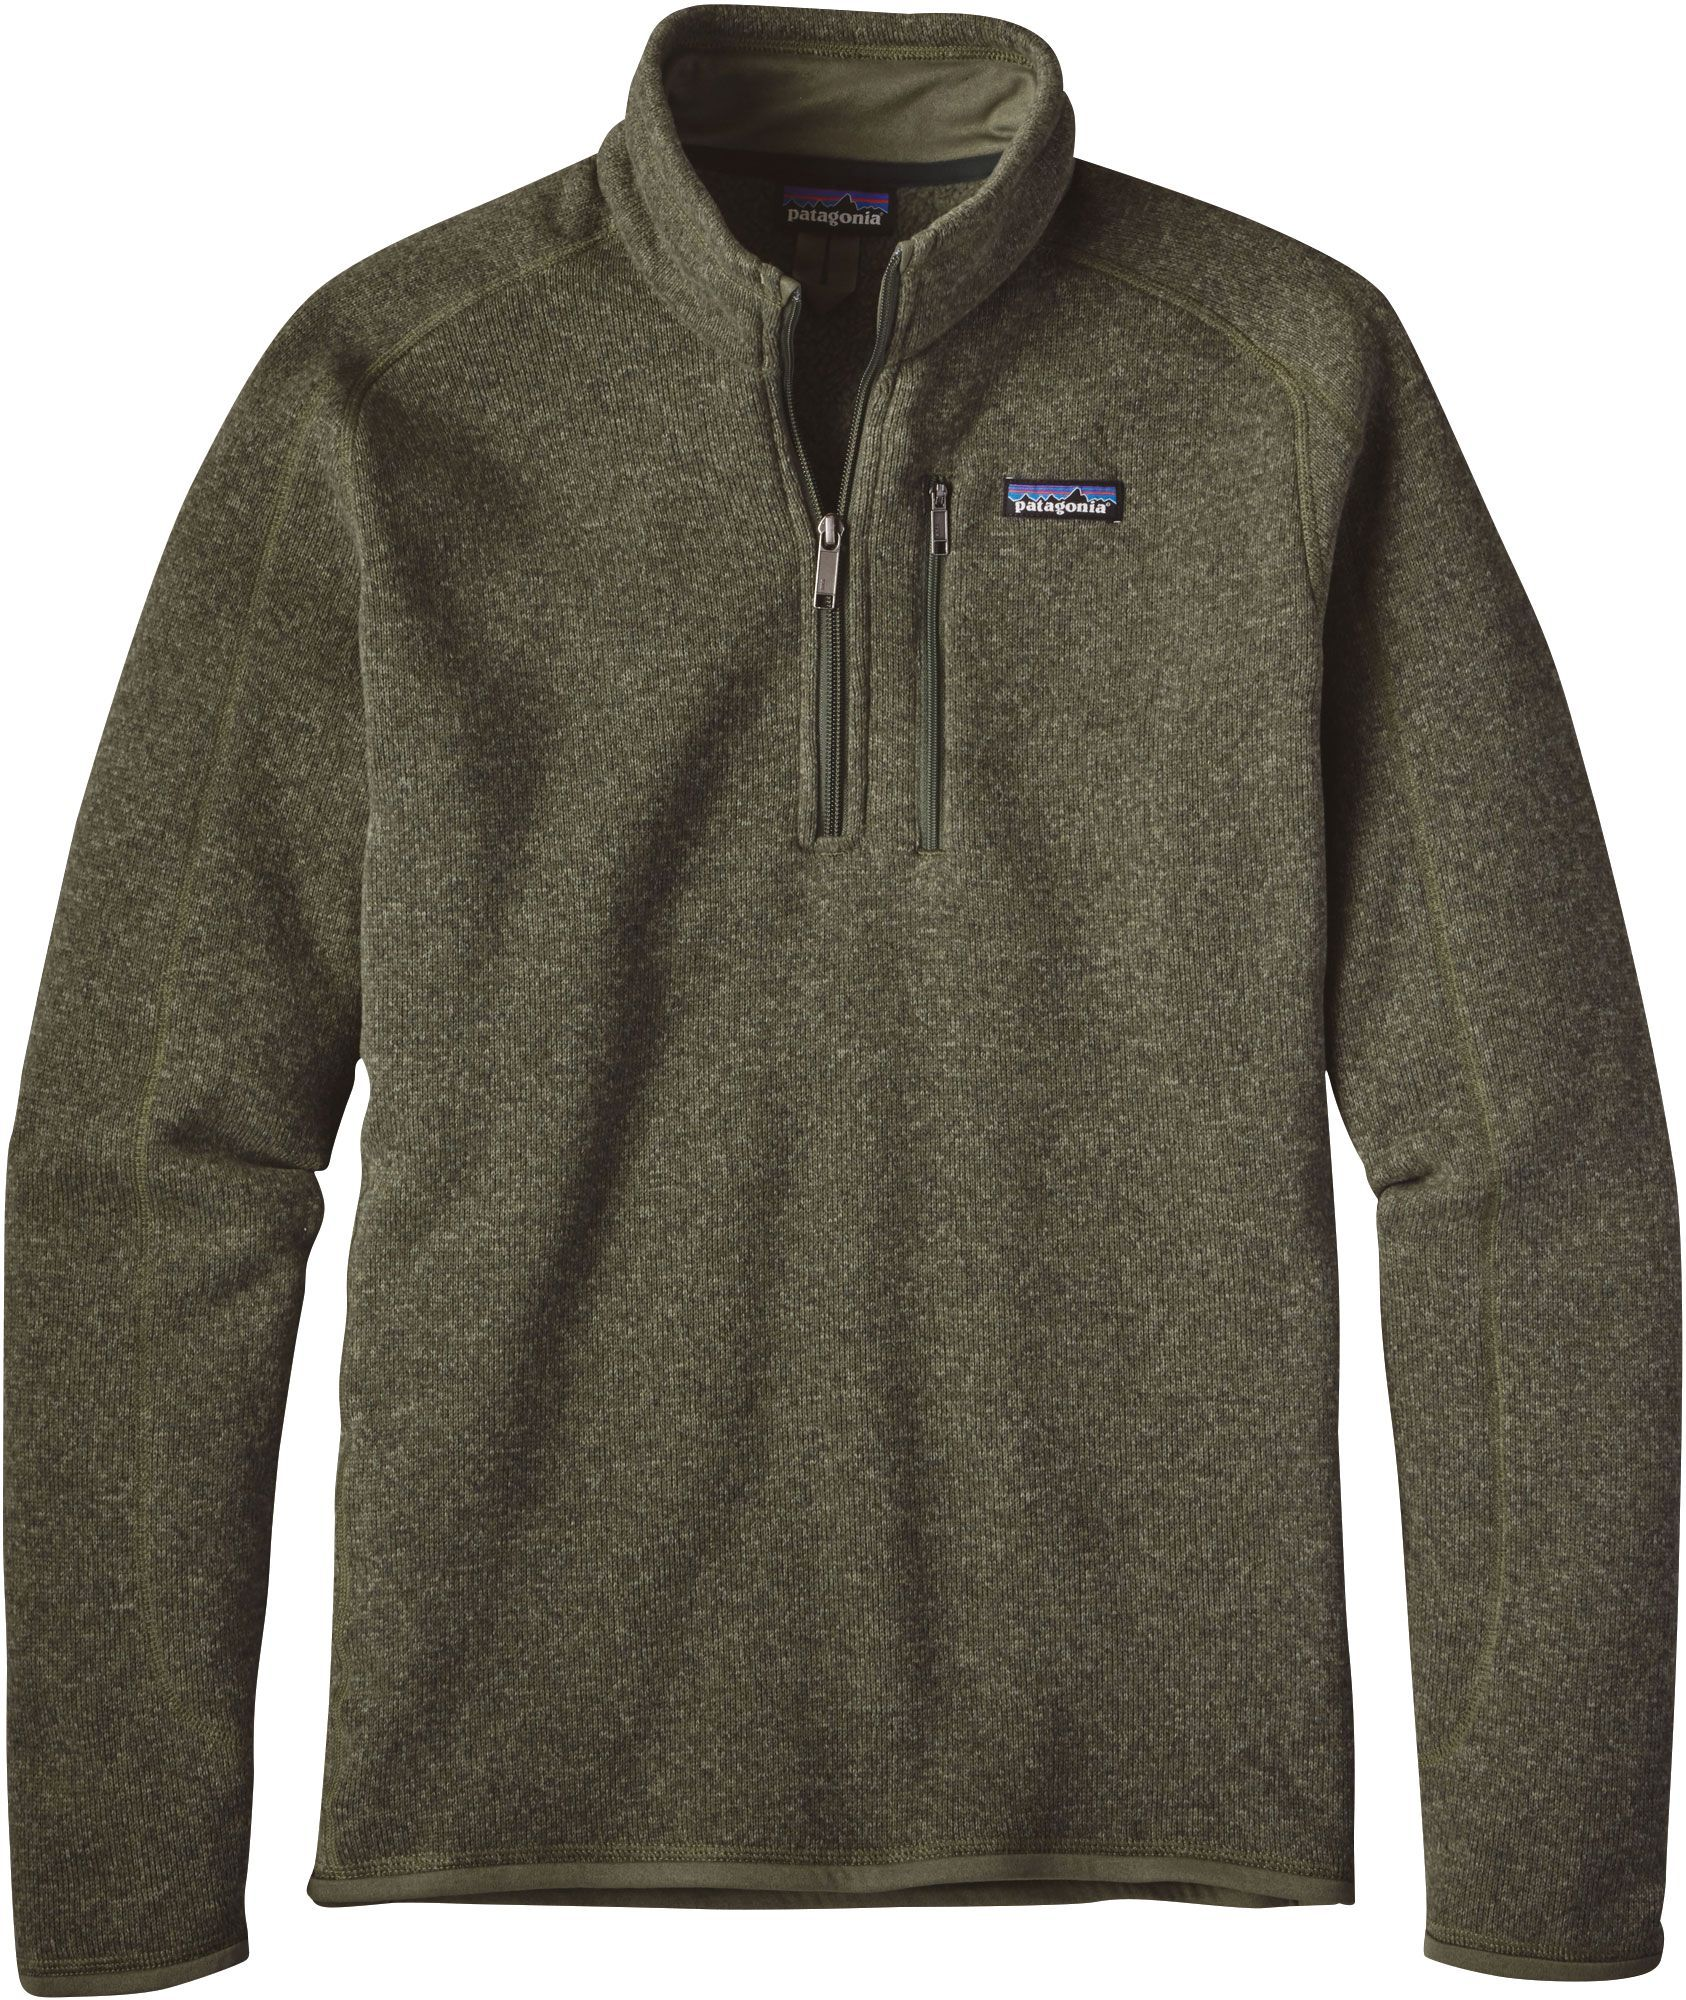 22 Cool Patagonia Womens Better Sweater Quarter Zip Fleece Jacket  Suggestions - patagonia womans torrentshell jacket 2b4d315206